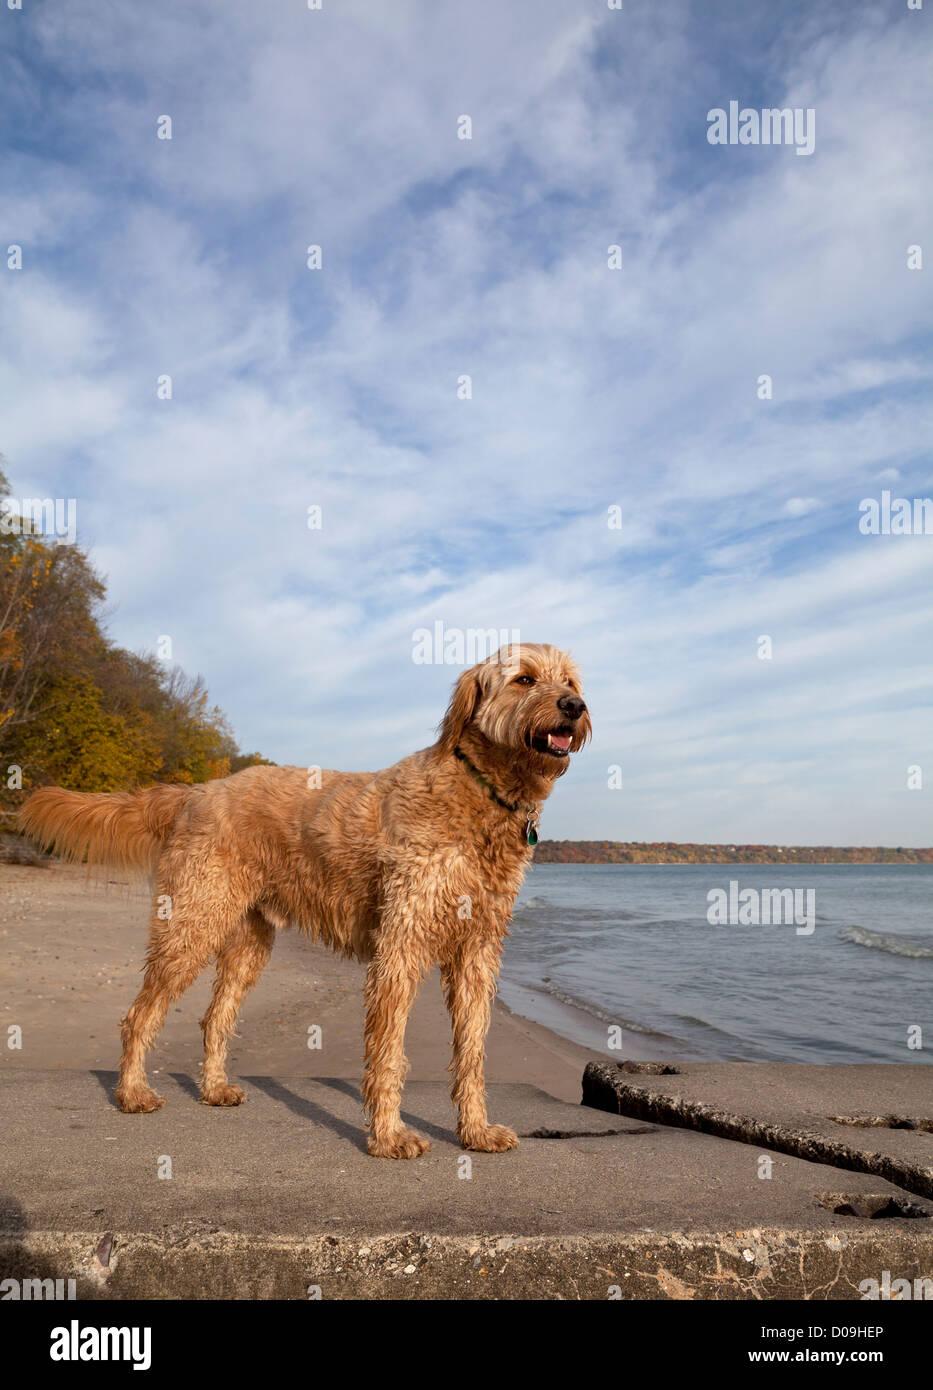 Un golden-doodle est alertly sur un quai à une plage du lac Michigan. Photo Stock